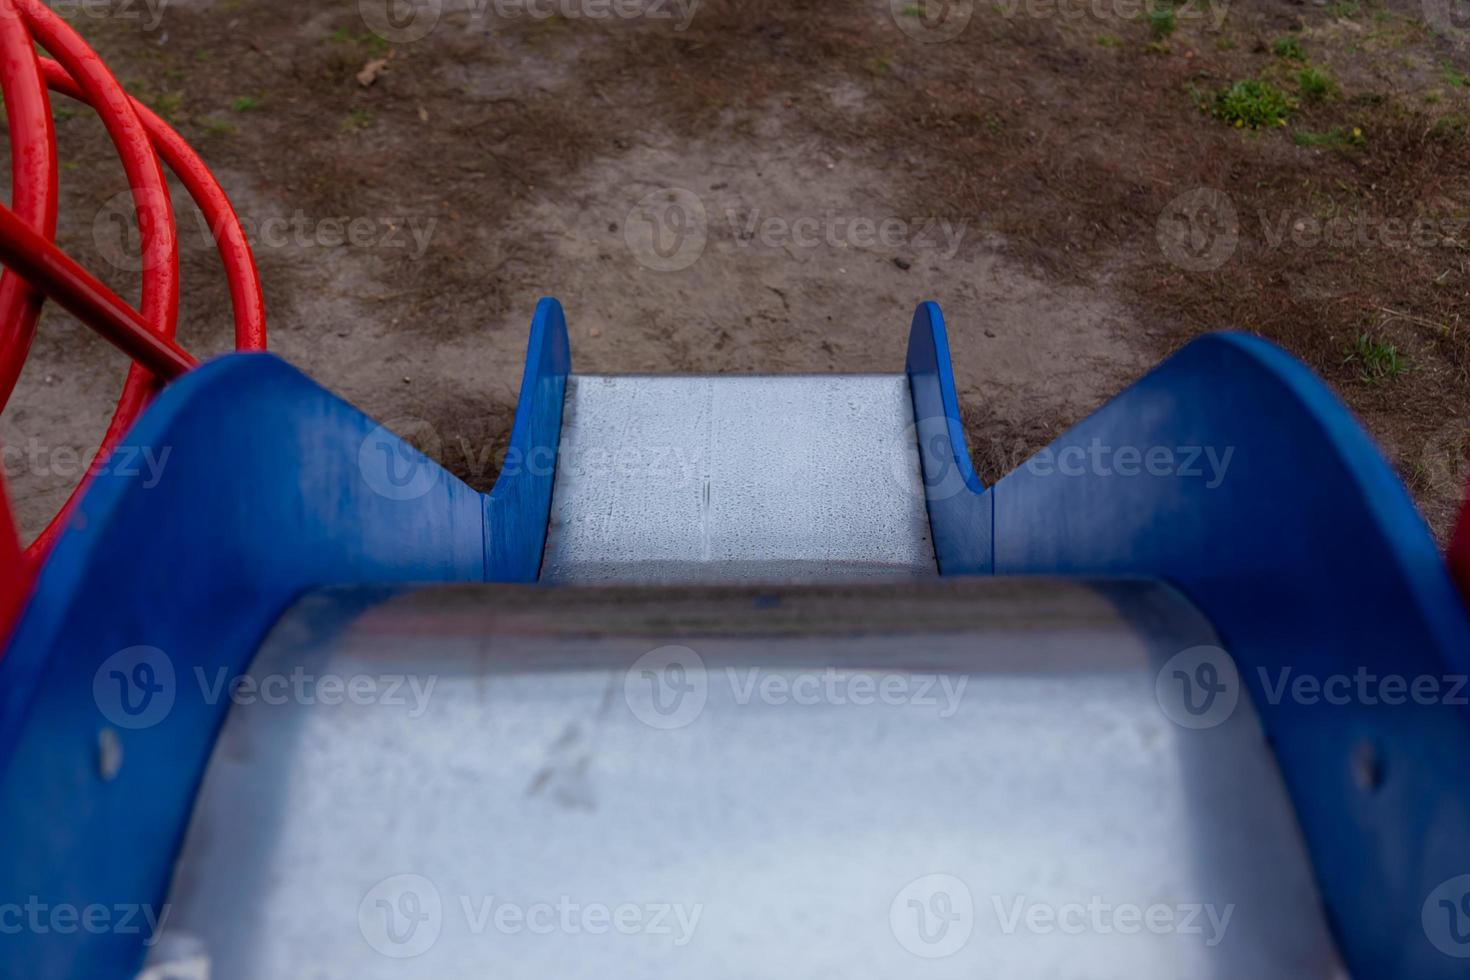 Children's slide with blue sides and a shiny metal surface photo